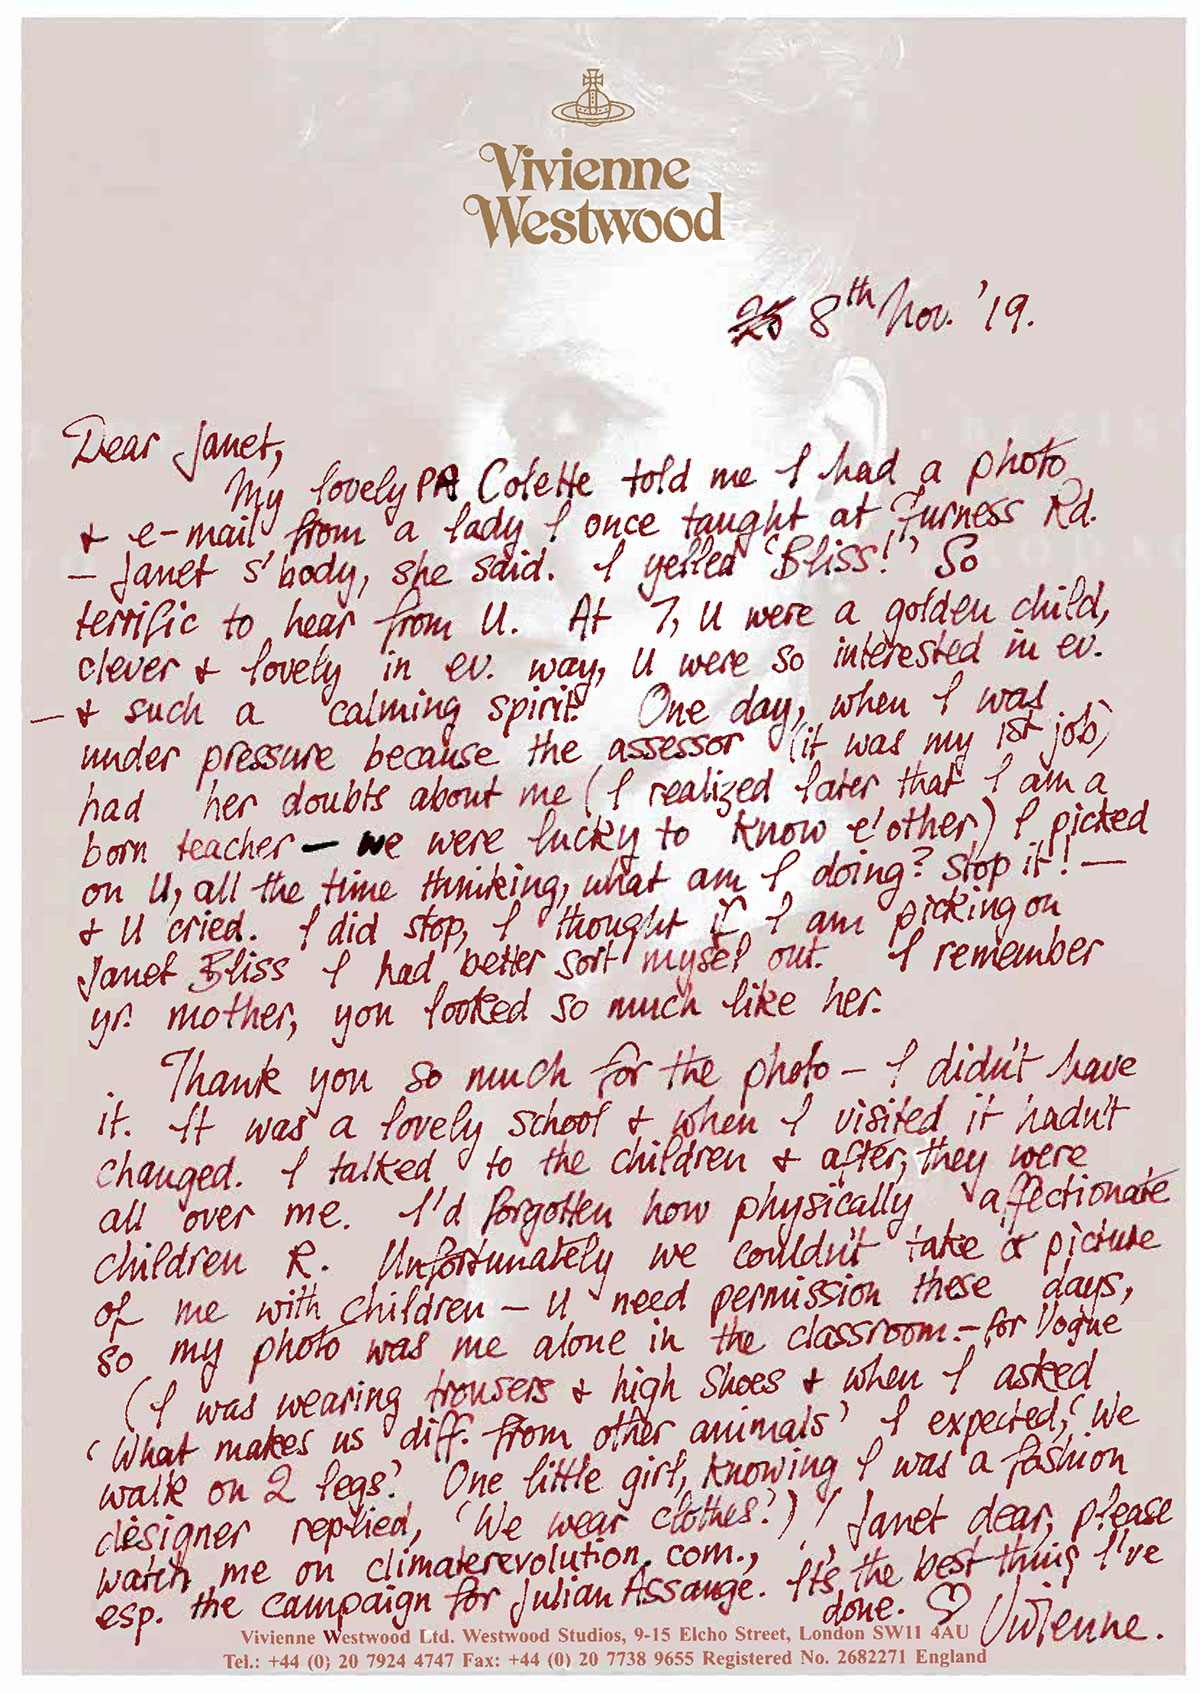 Vivienne's letter to Janet Bliss